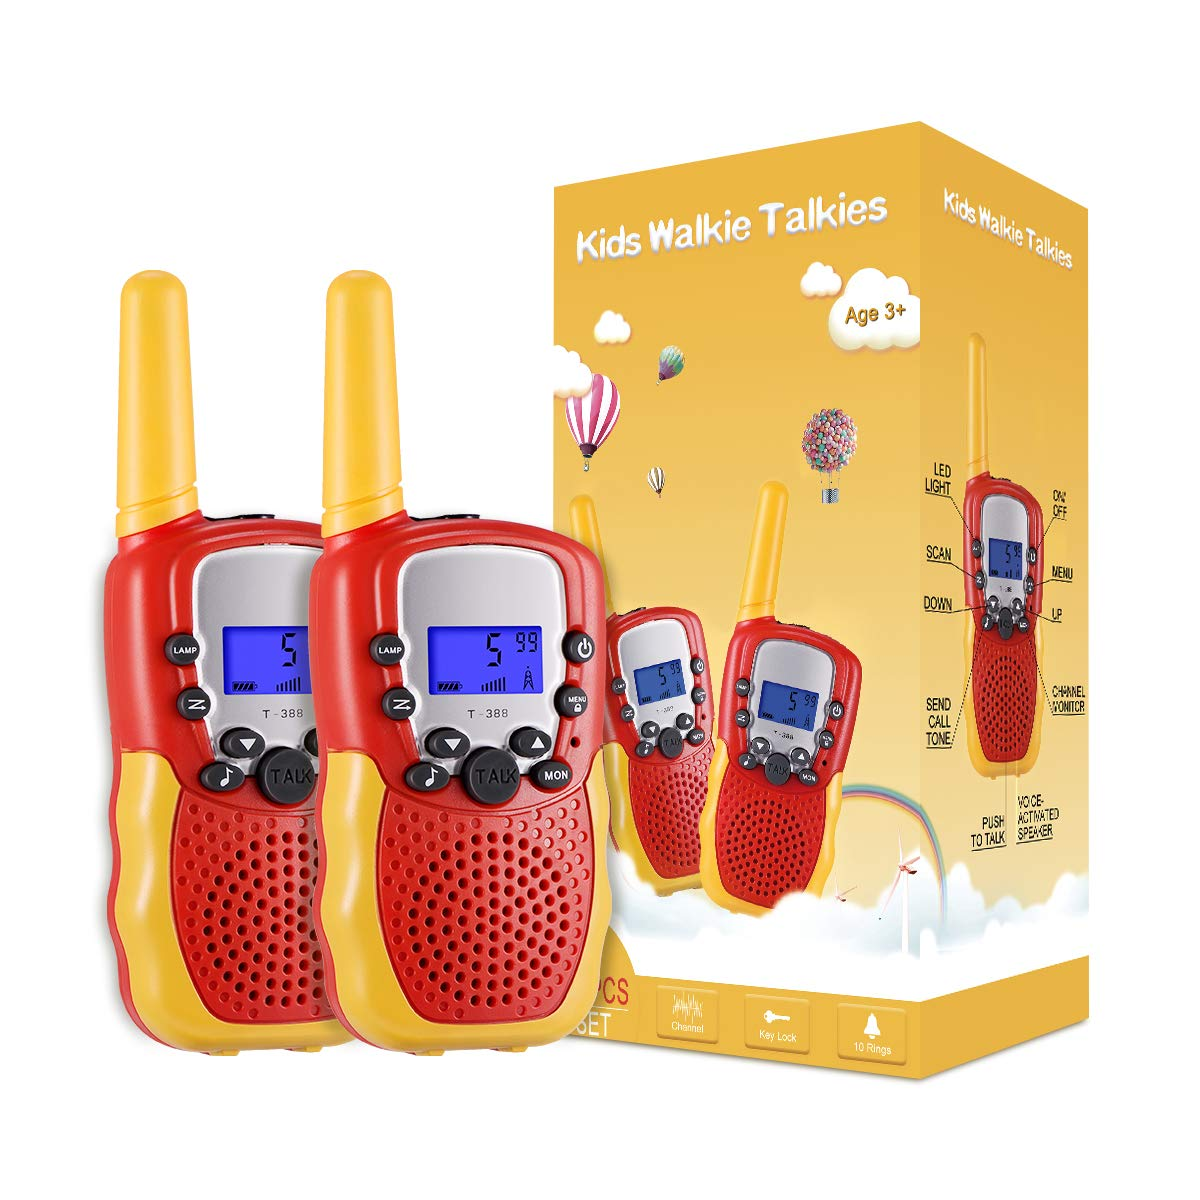 3 Miles Range for Outside Adventures Hiking Kearui Toys for 3-12 Year Old Boys Camping Walkie Talkies for Kids 22 Channels 2 Way Radio Toy with Backlit LCD Flashlight